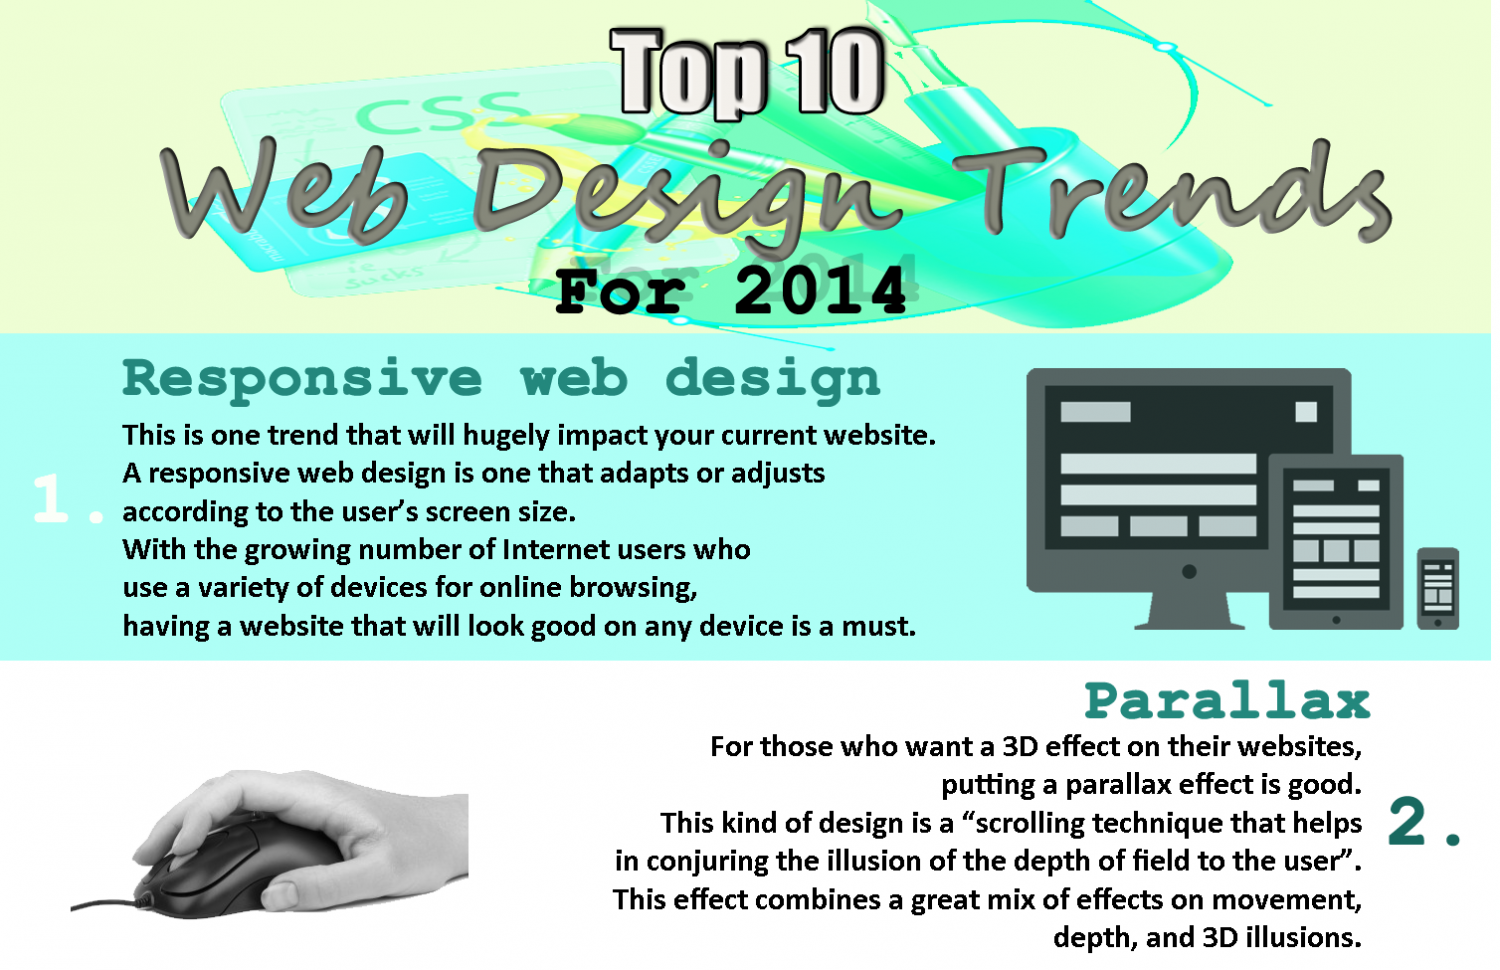 Top 10 Web Design Trends For 2014 Infographic